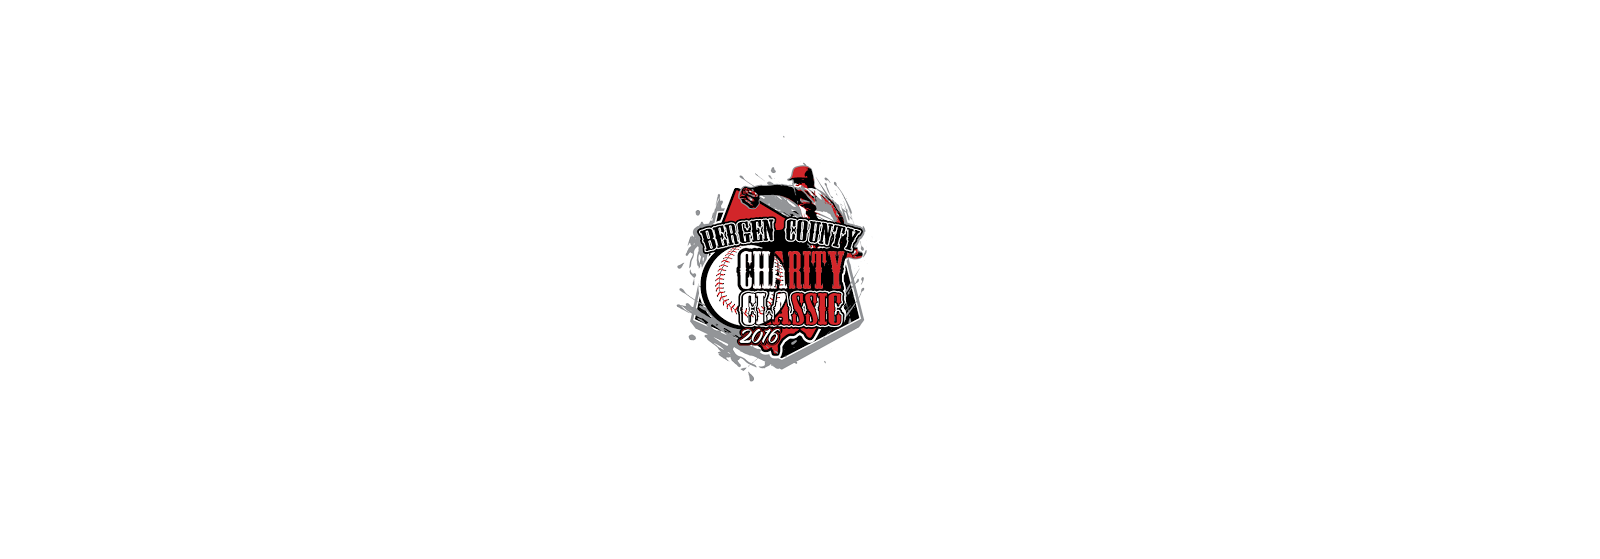 VECTOR LOGO DESIGN FOR PRINT BERGEN COUNTY CHARITY CLASSIC BASEBALL EVENT